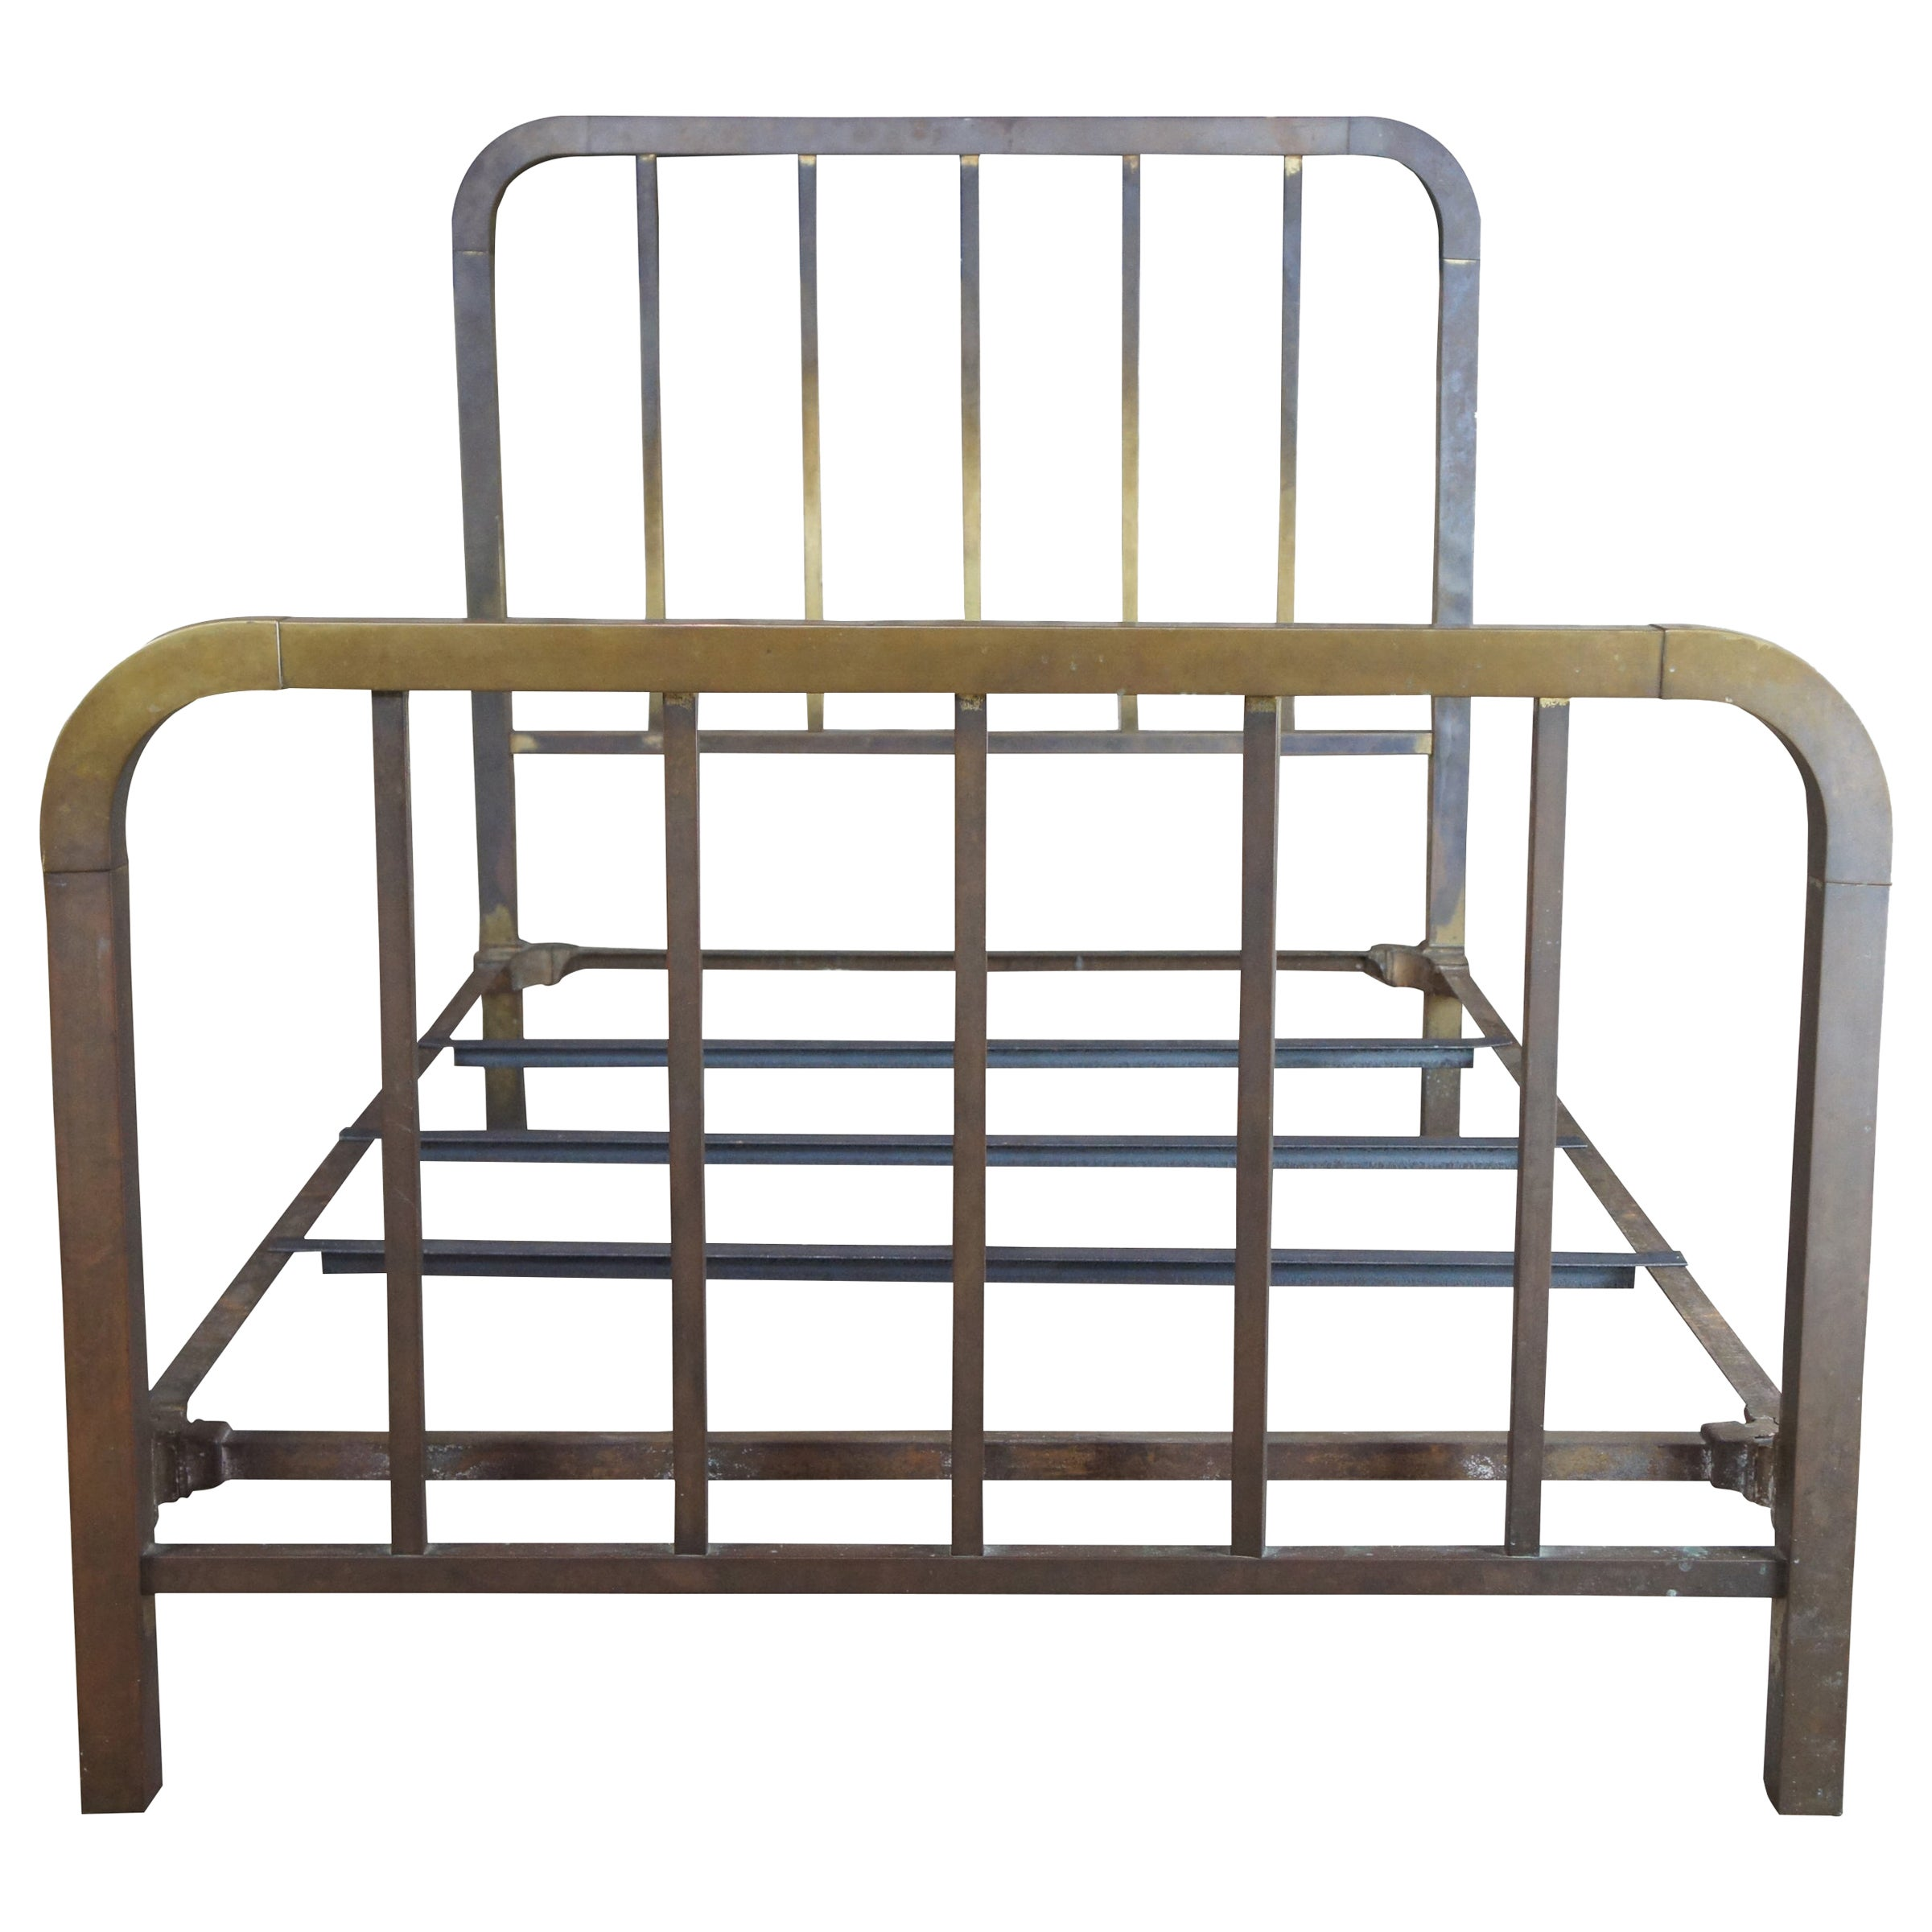 Antique 19th Century Victorian Brass Full or Double Size Curved Bed Frame Gold